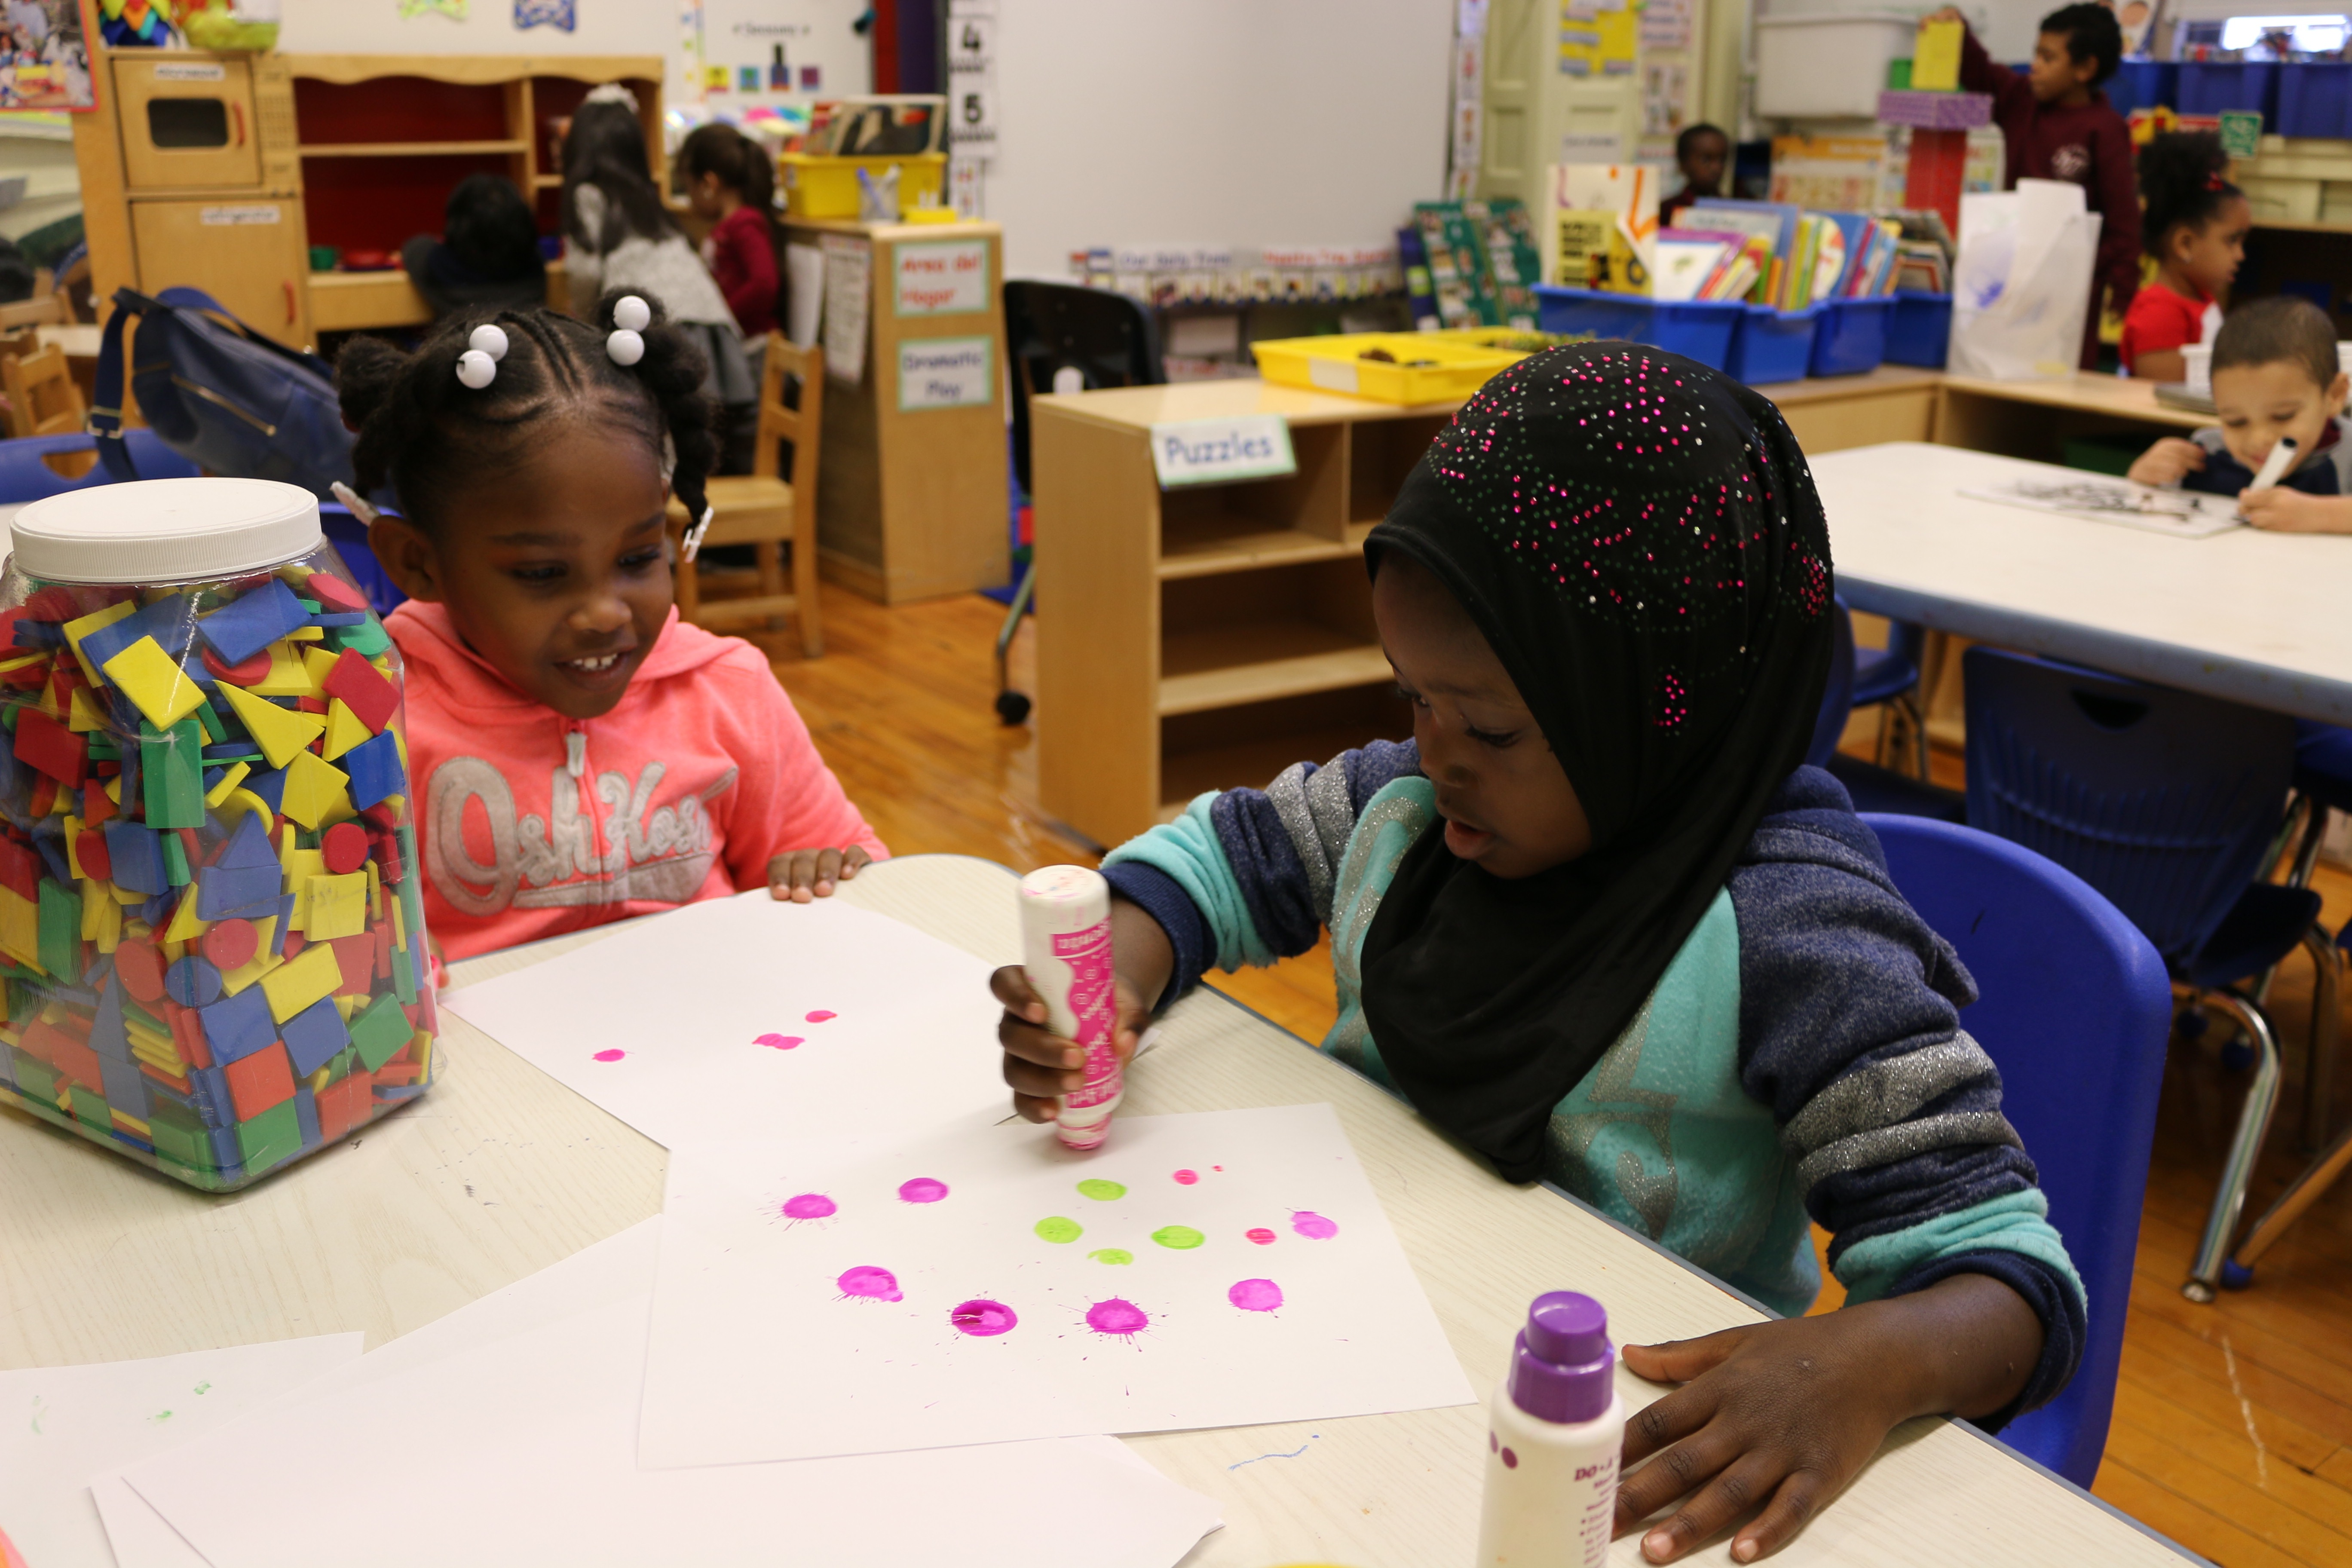 Pre-K students at P.S. 277 in the Bronx play with paint during center time. The education department announced a record number of families received an offer for their top-choice Pre-K for All program, but there were fewer applications overall.